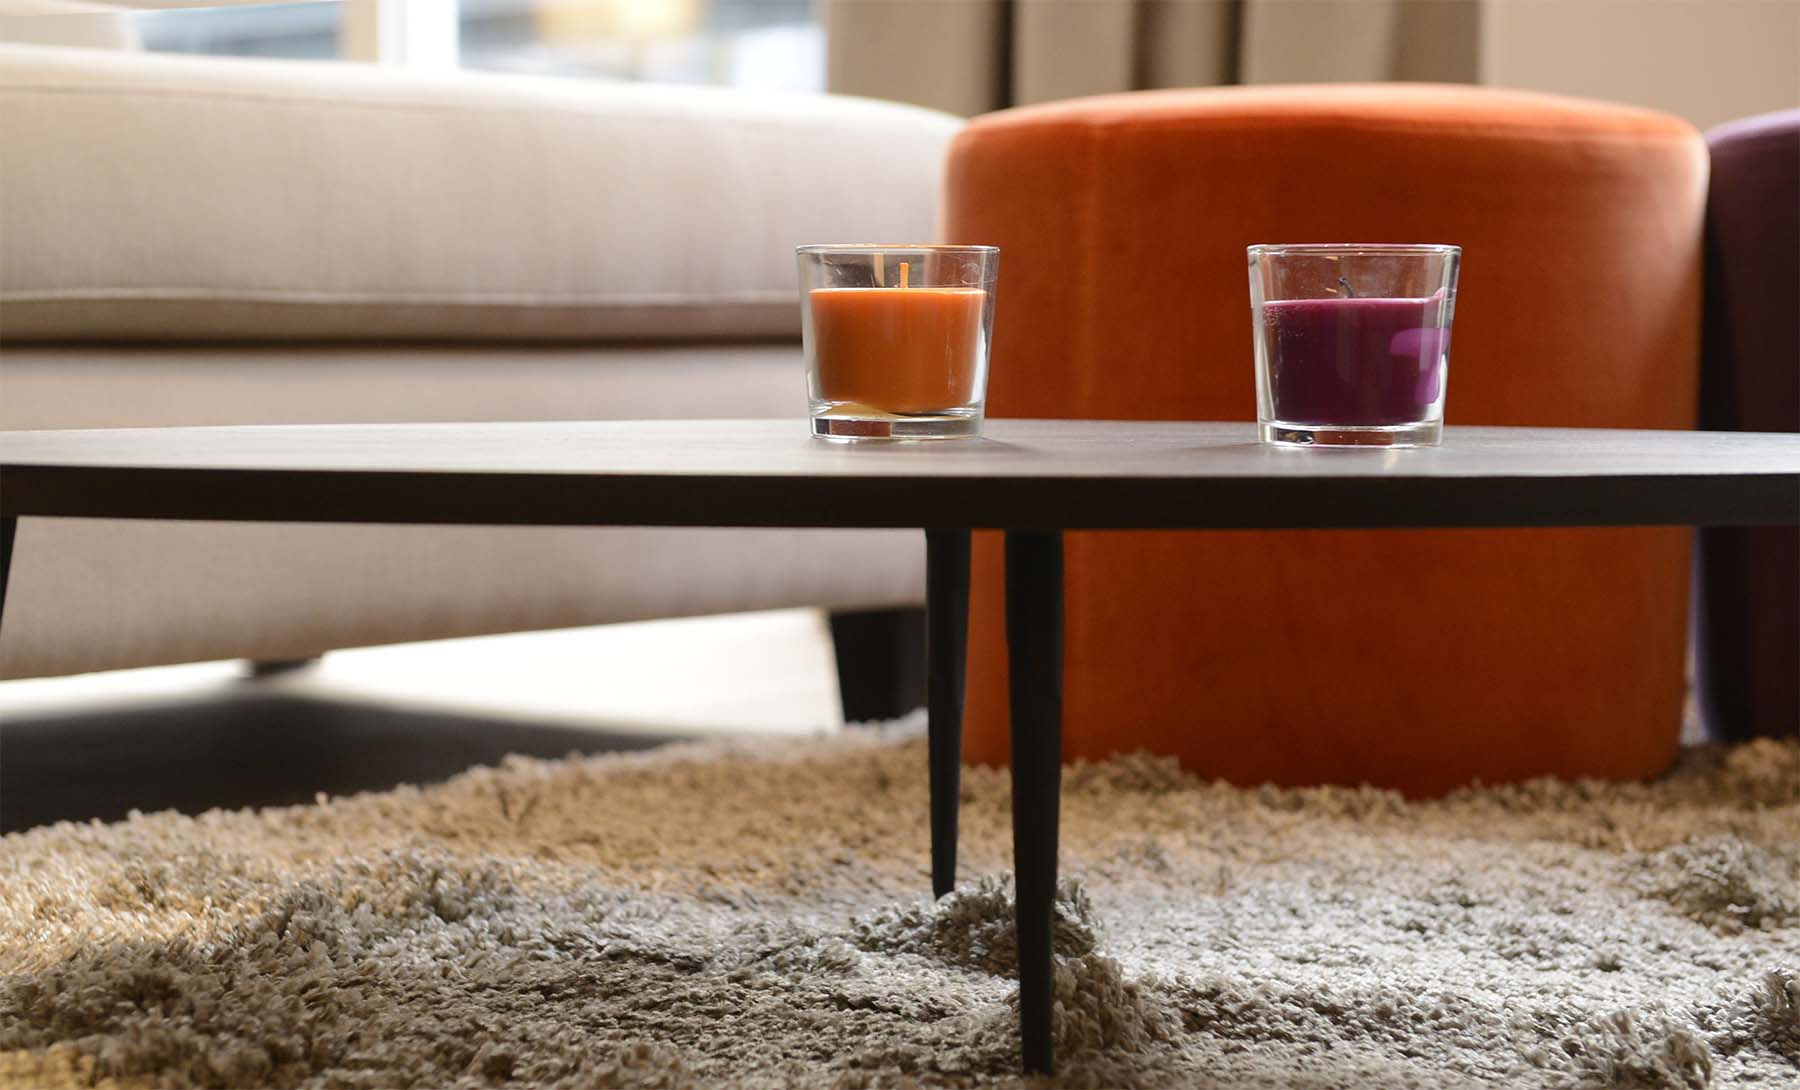 Flat brugmann apartments chic style very cool and contemporary